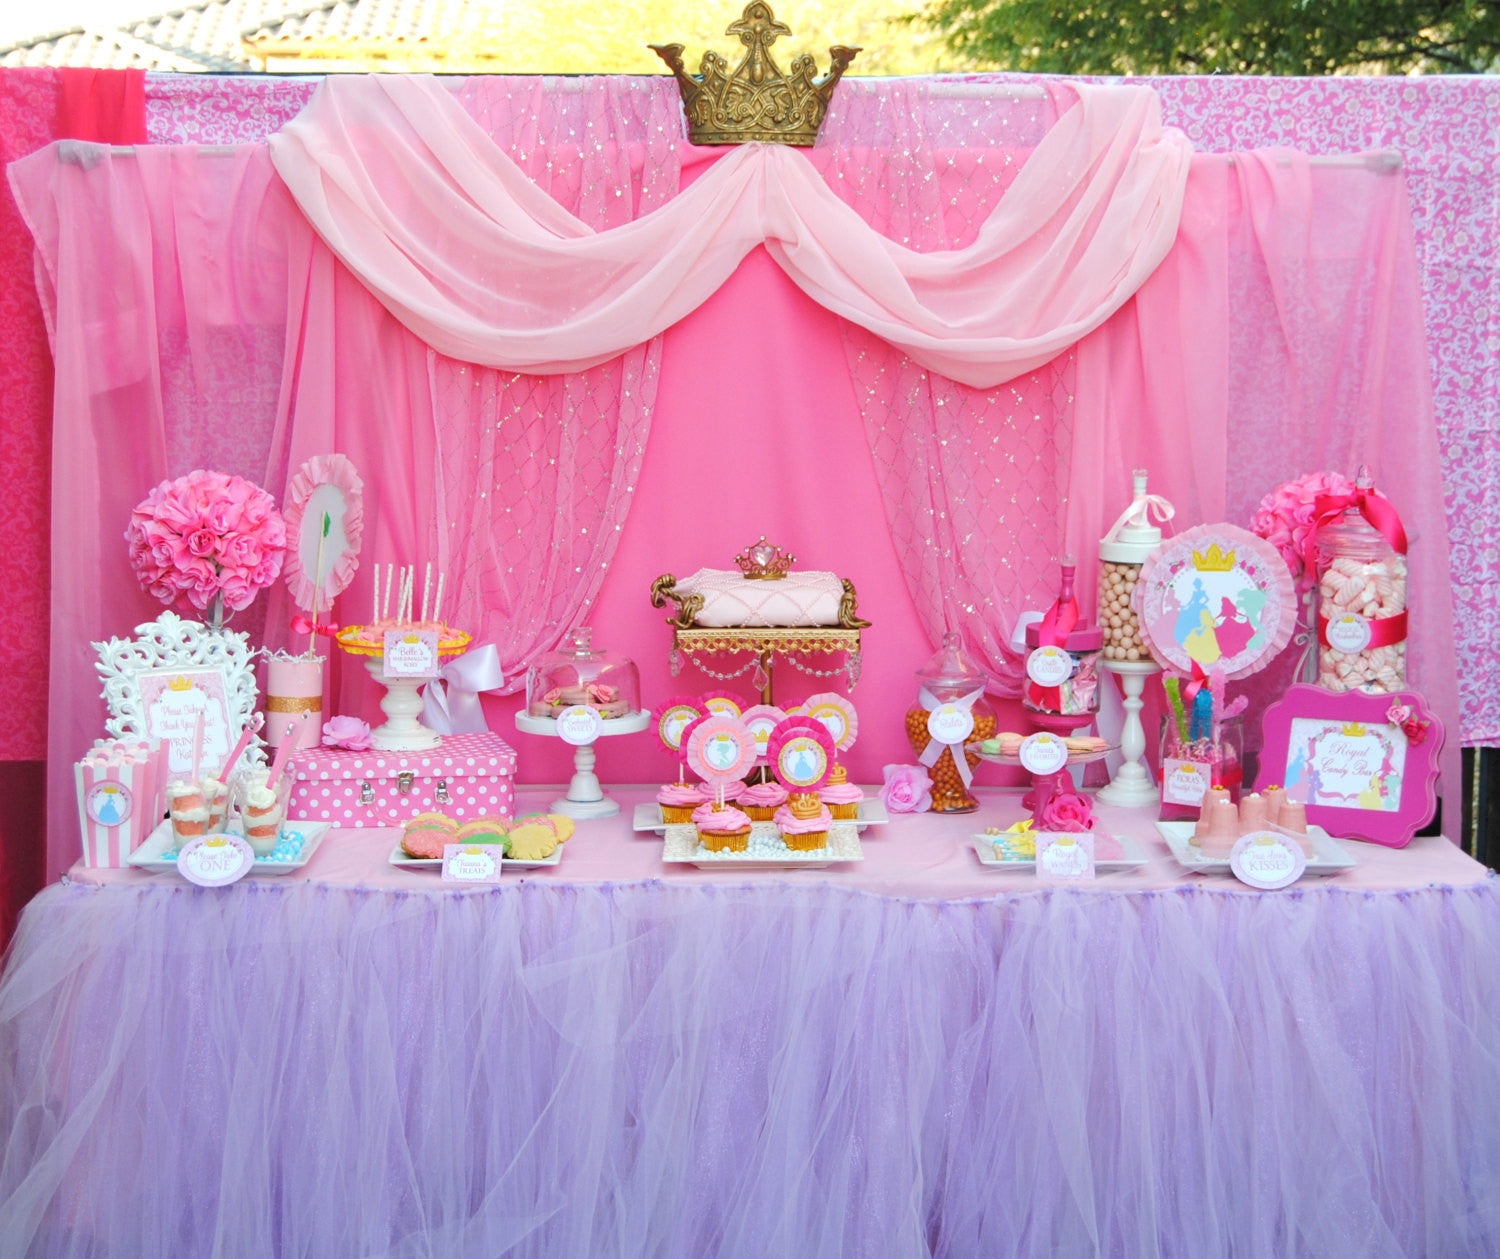 Princesses party girls birthday party pink printables for Princess birthday party crafts